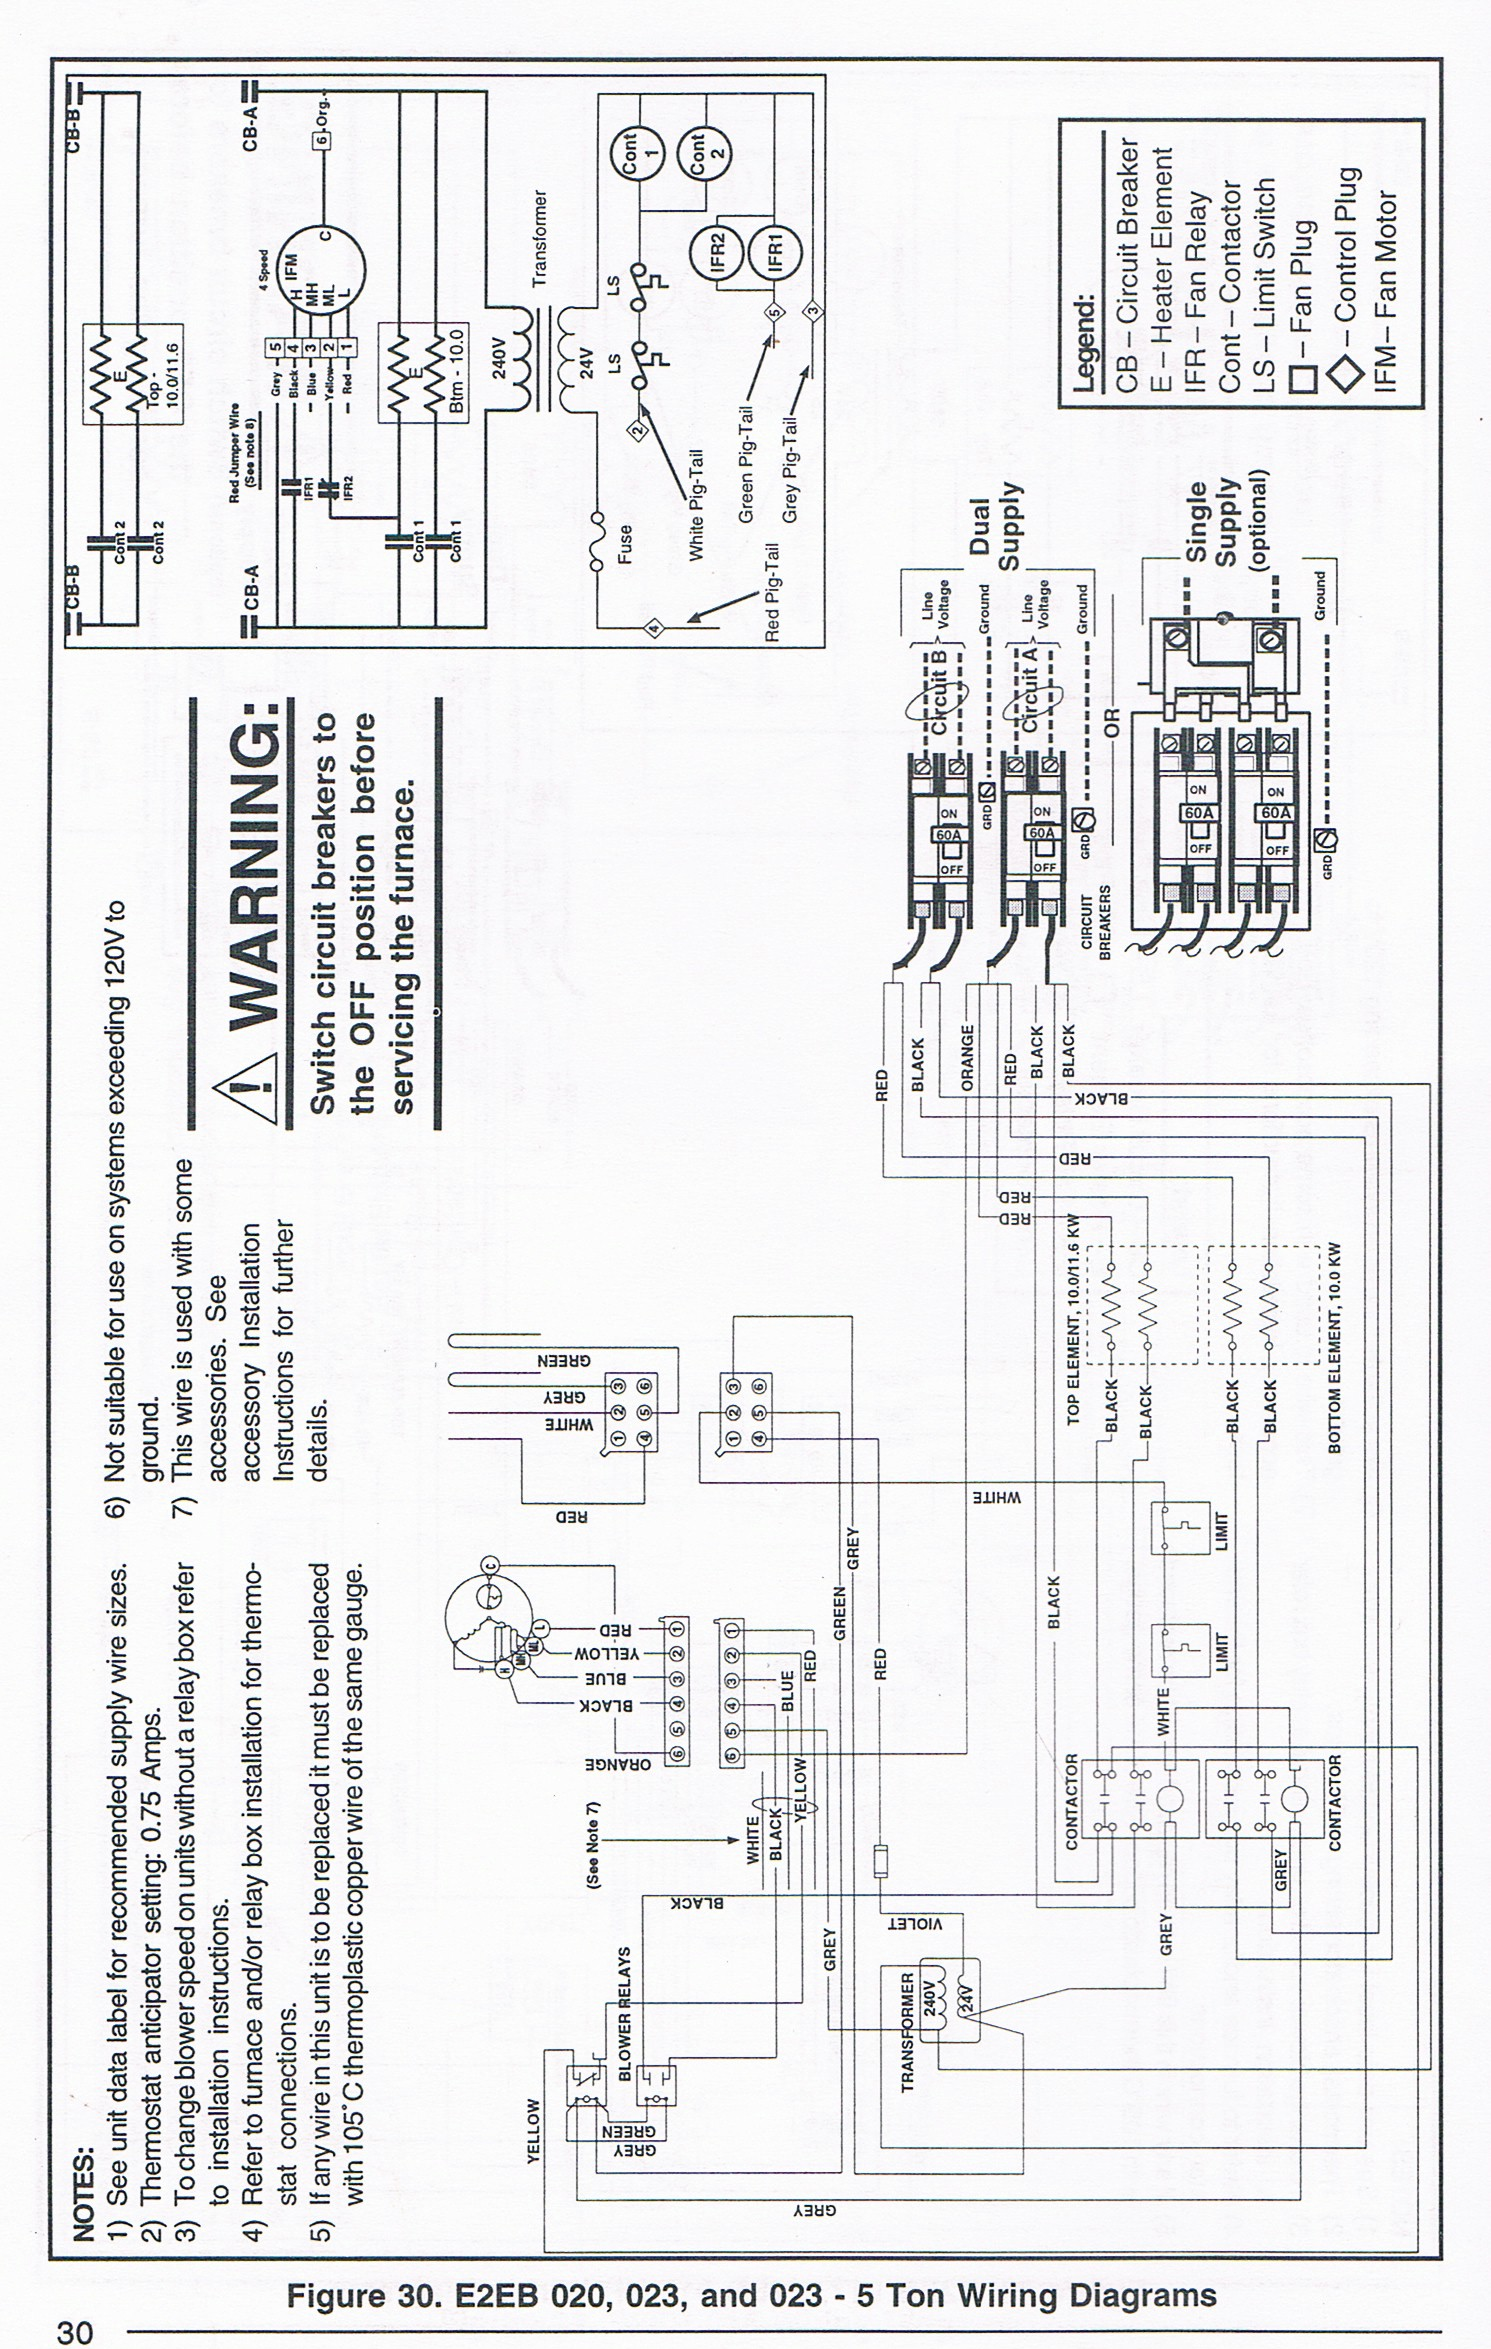 2011 05 04_234443_e2eb e2eb 017ha wiring diagram intertherm wiring diagram \u2022 wiring intertherm thermostat wiring diagram at n-0.co